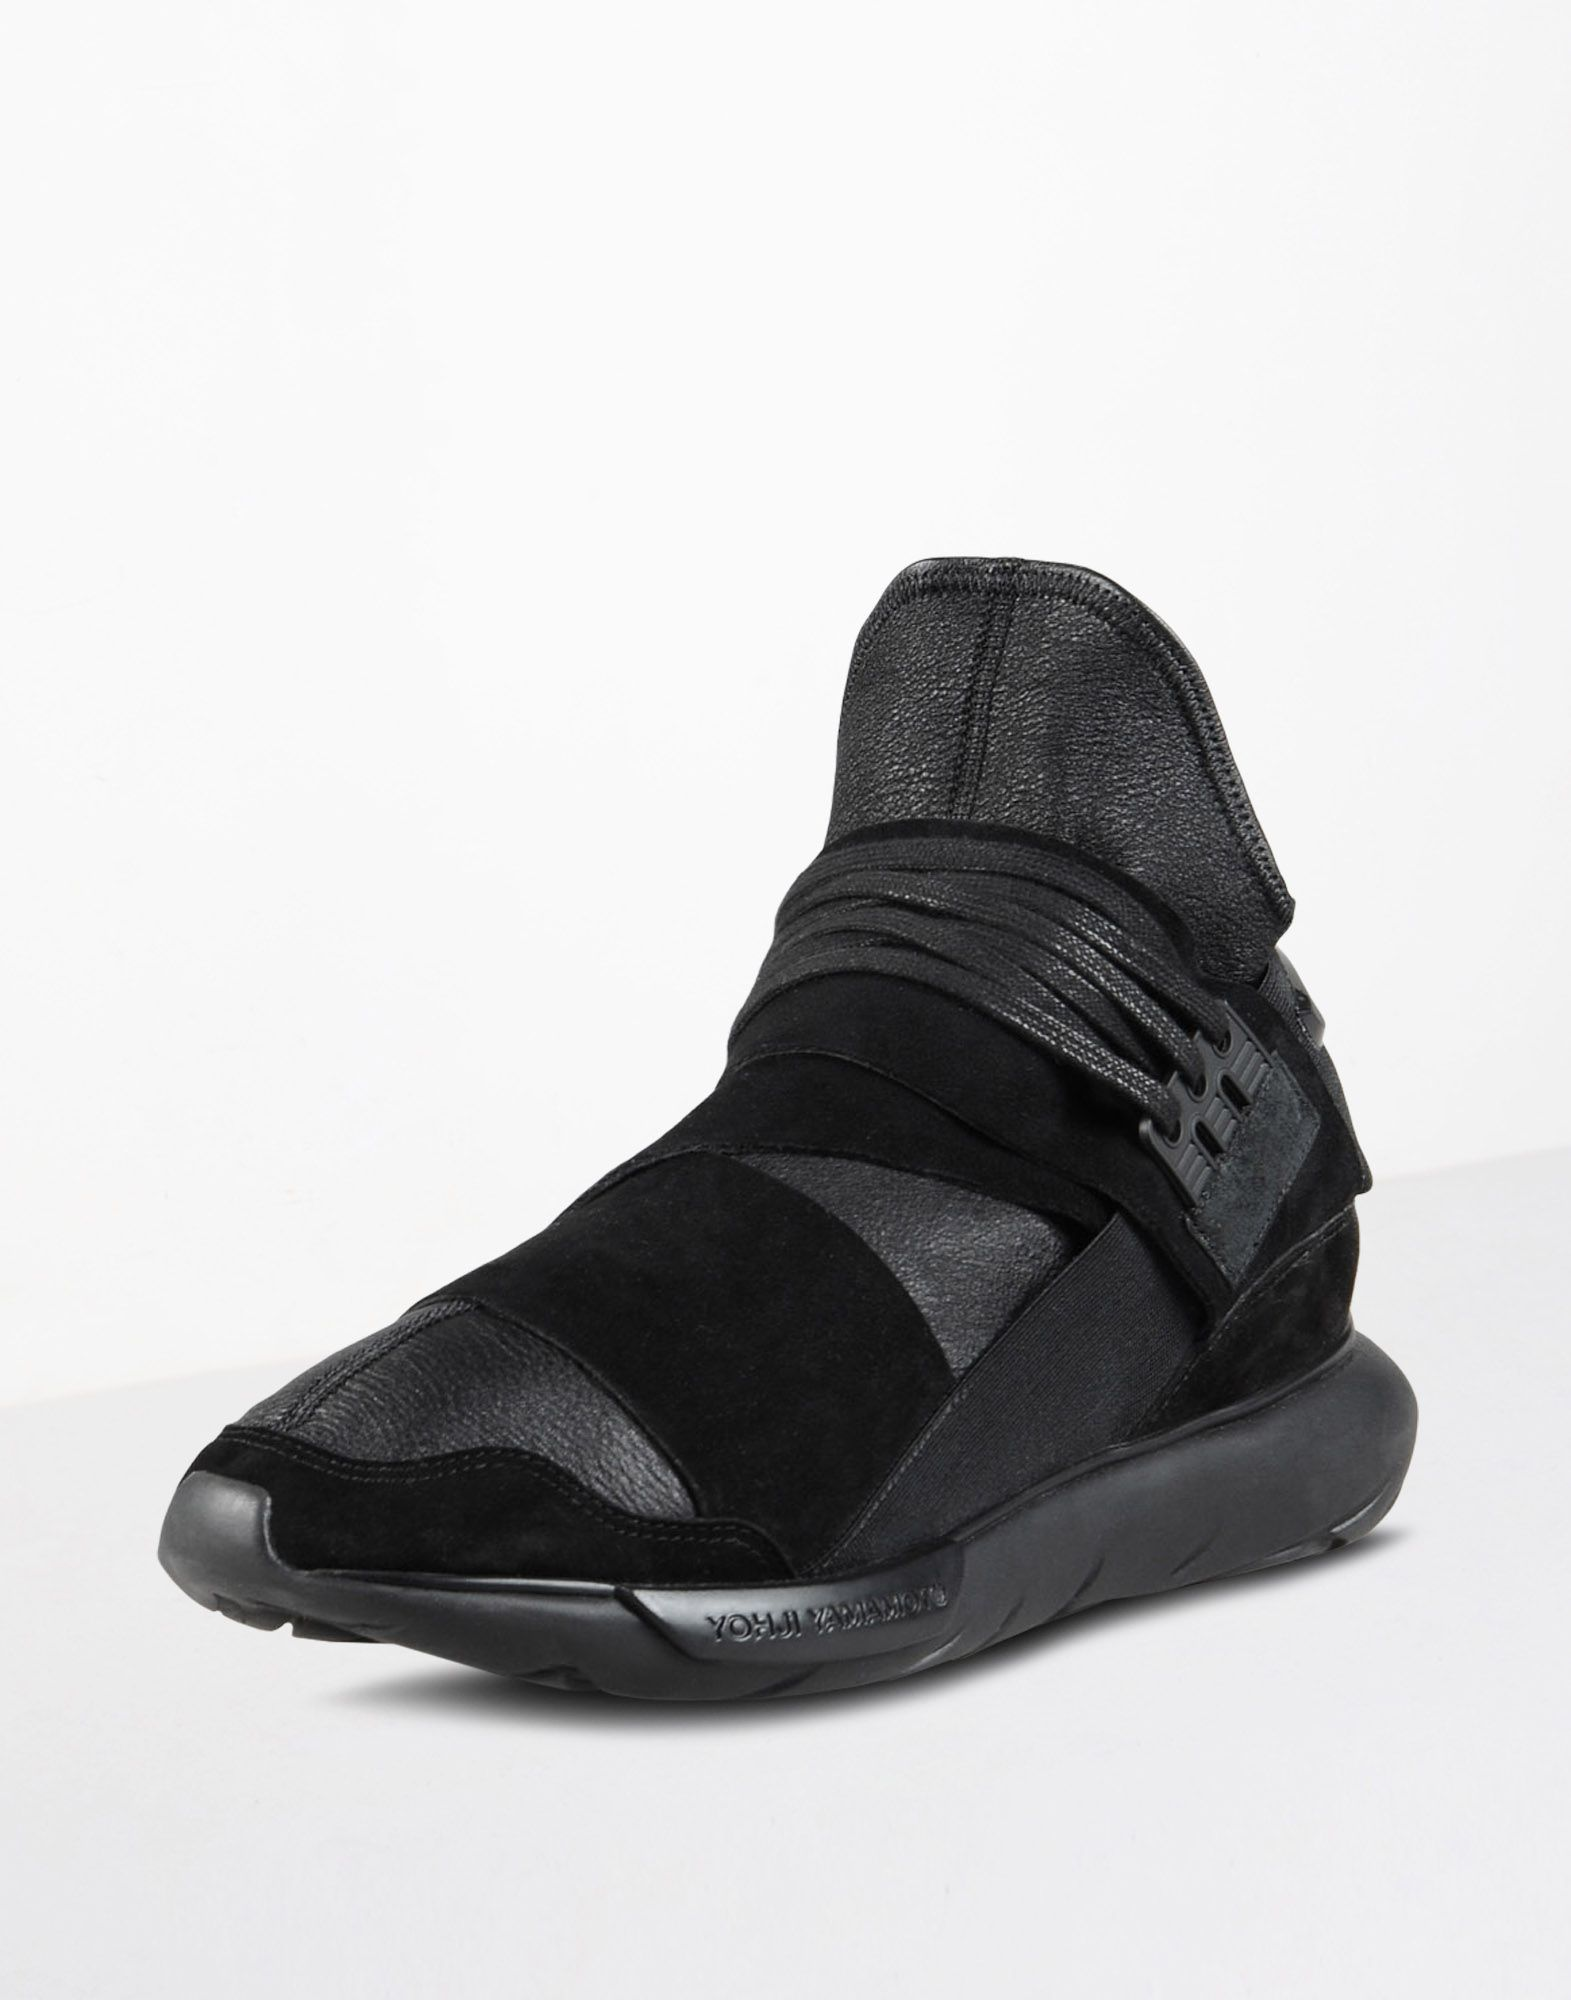 31c758f979f0 Y-3 QASA HIGH SHOES man Y-3 adidas